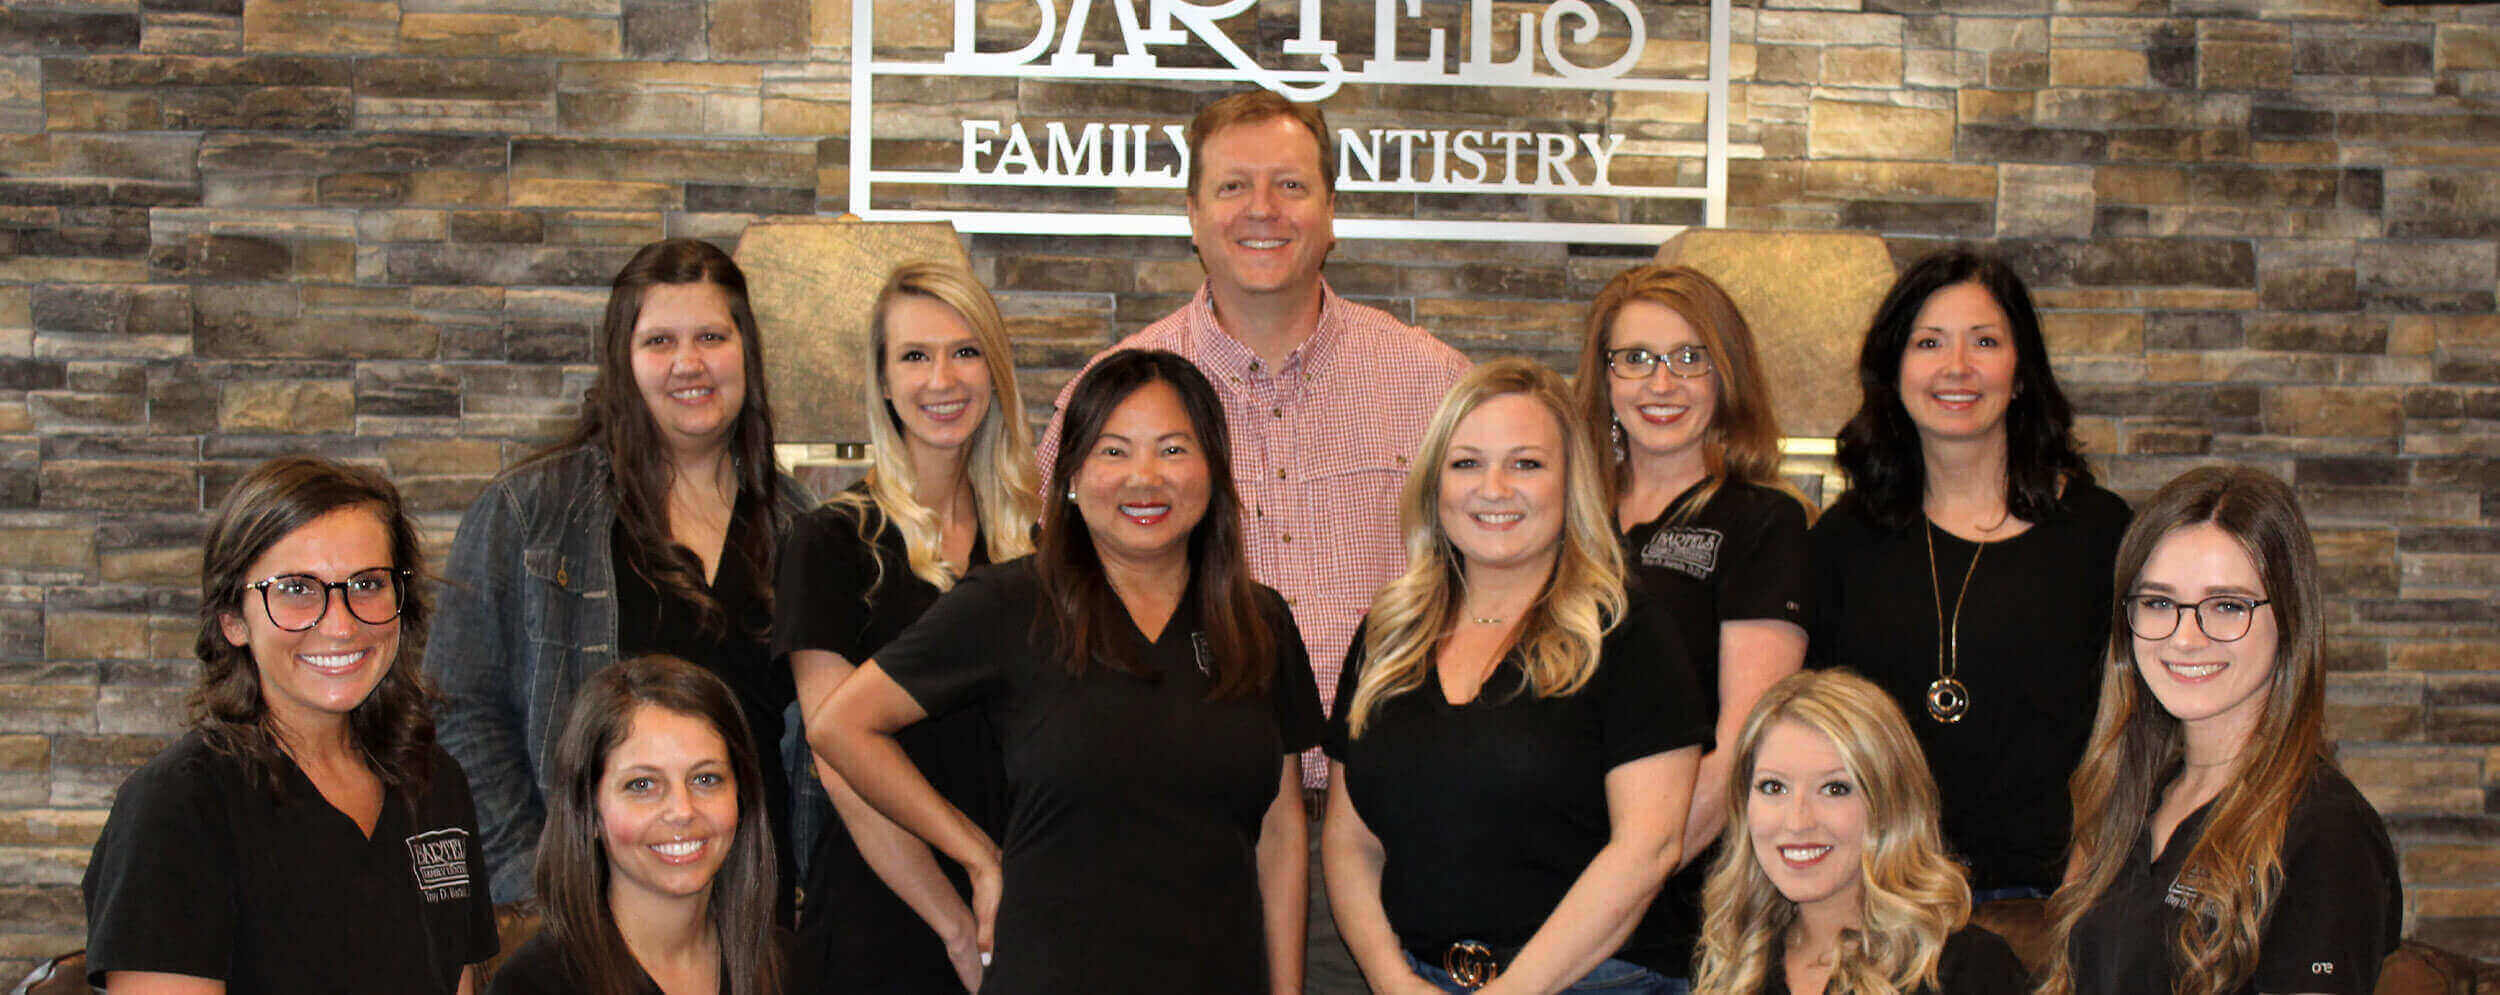 The team at our Jonesboro dentistry